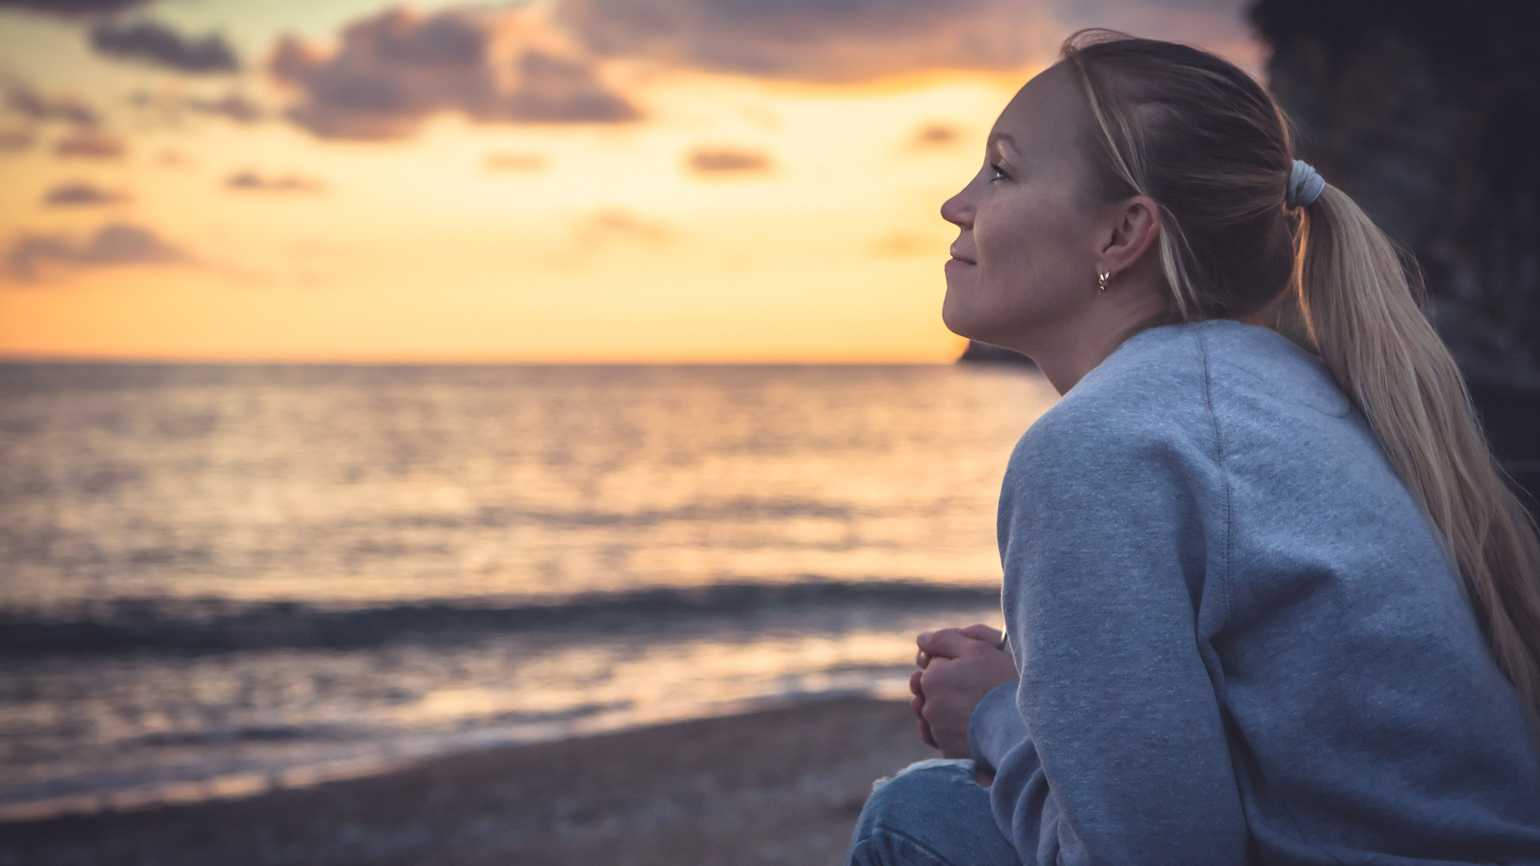 Smiling woman looking with hope into horizon during sunset at beach